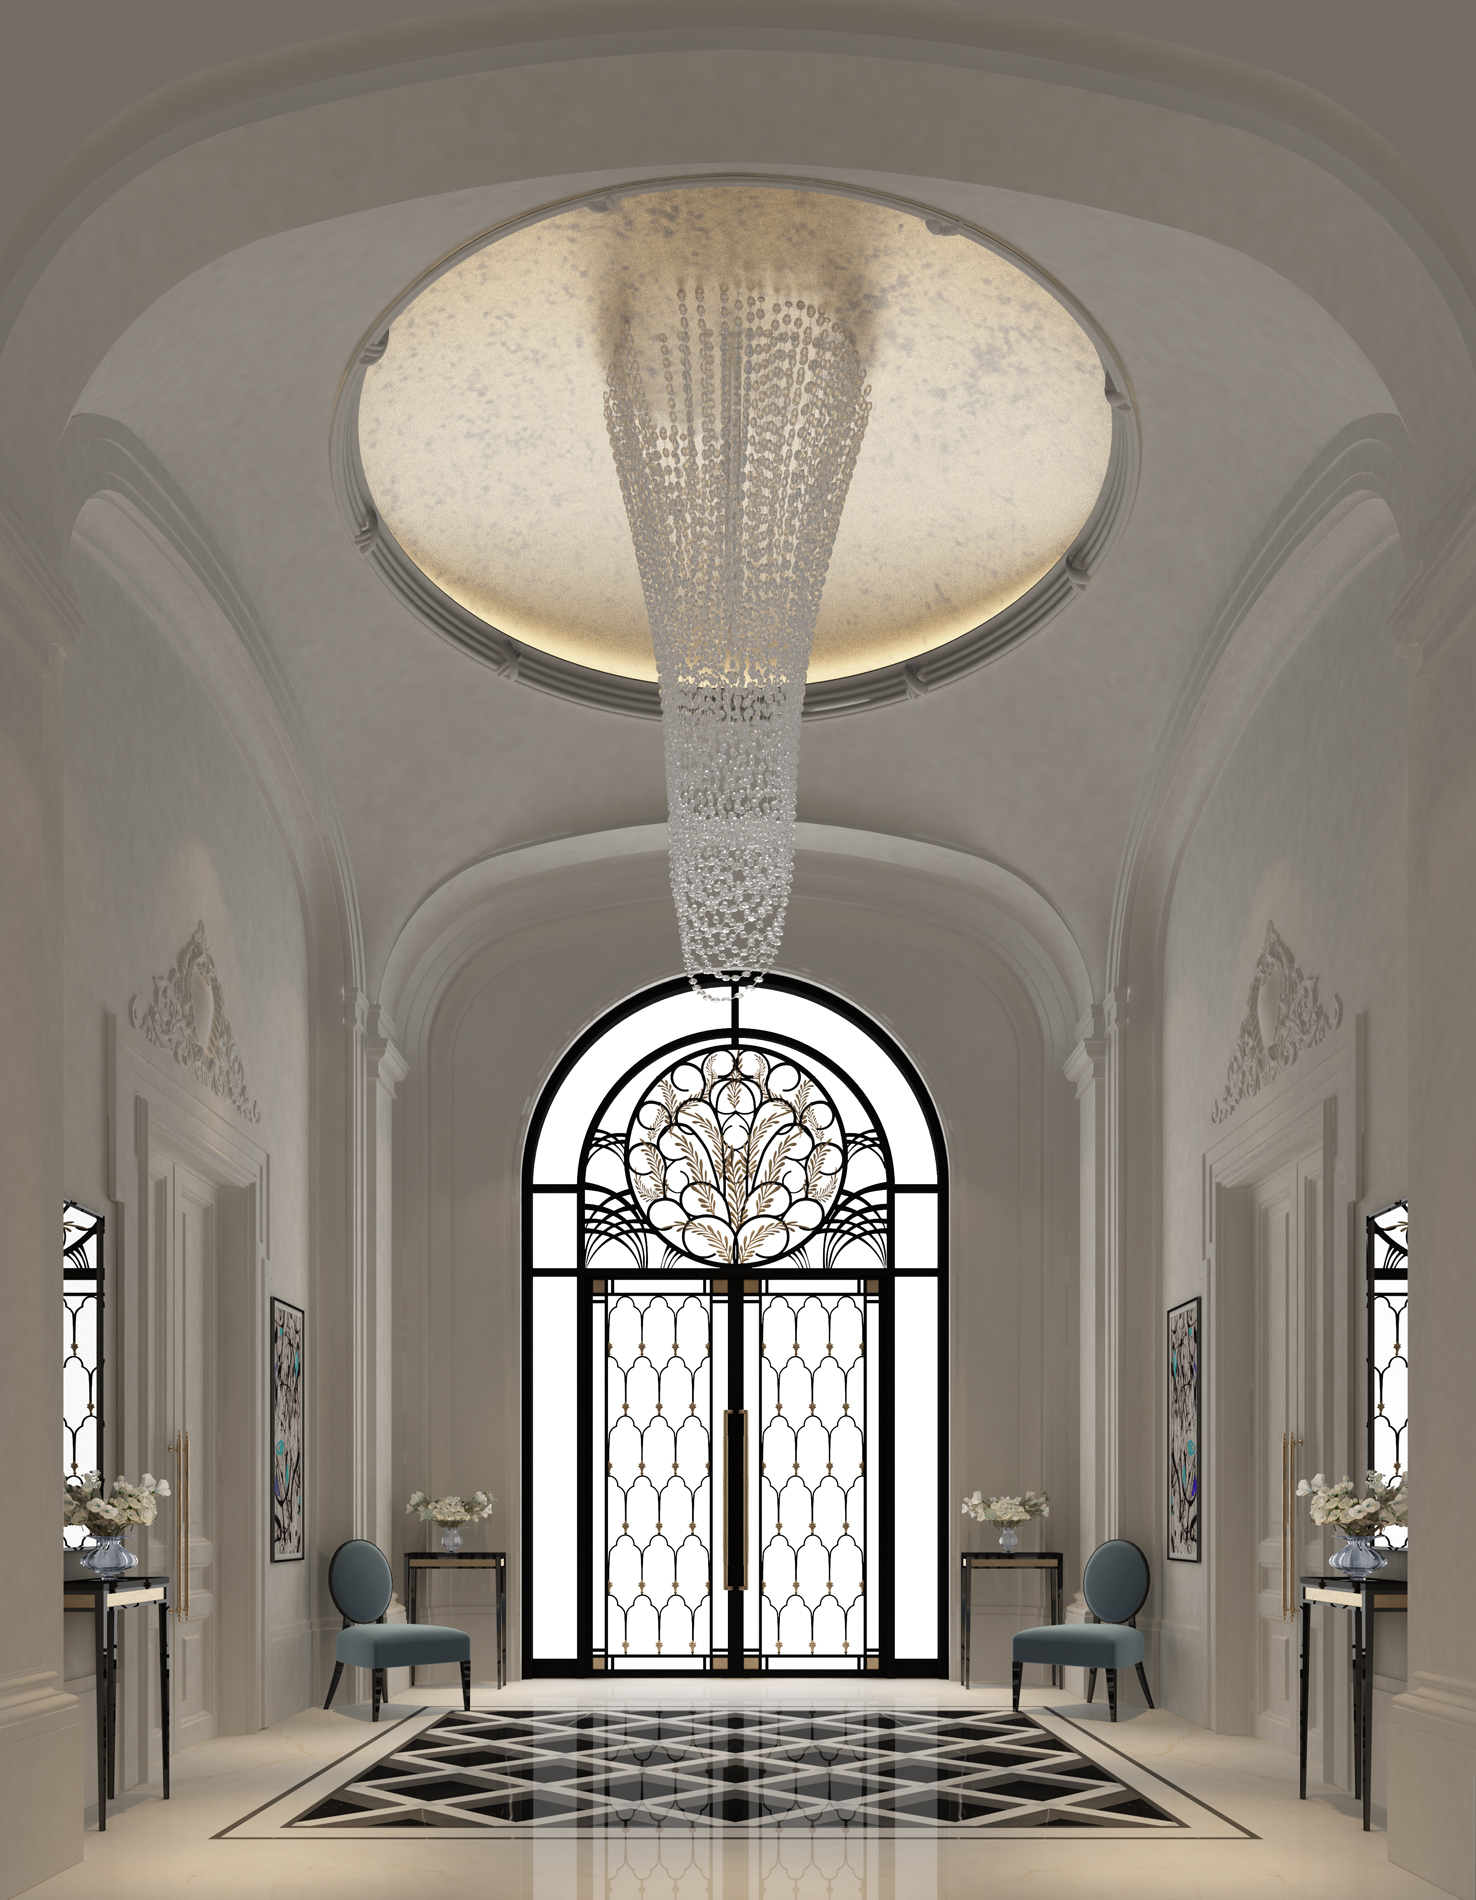 Ions luxury interior design dubai interior design for Villa lobby interior design